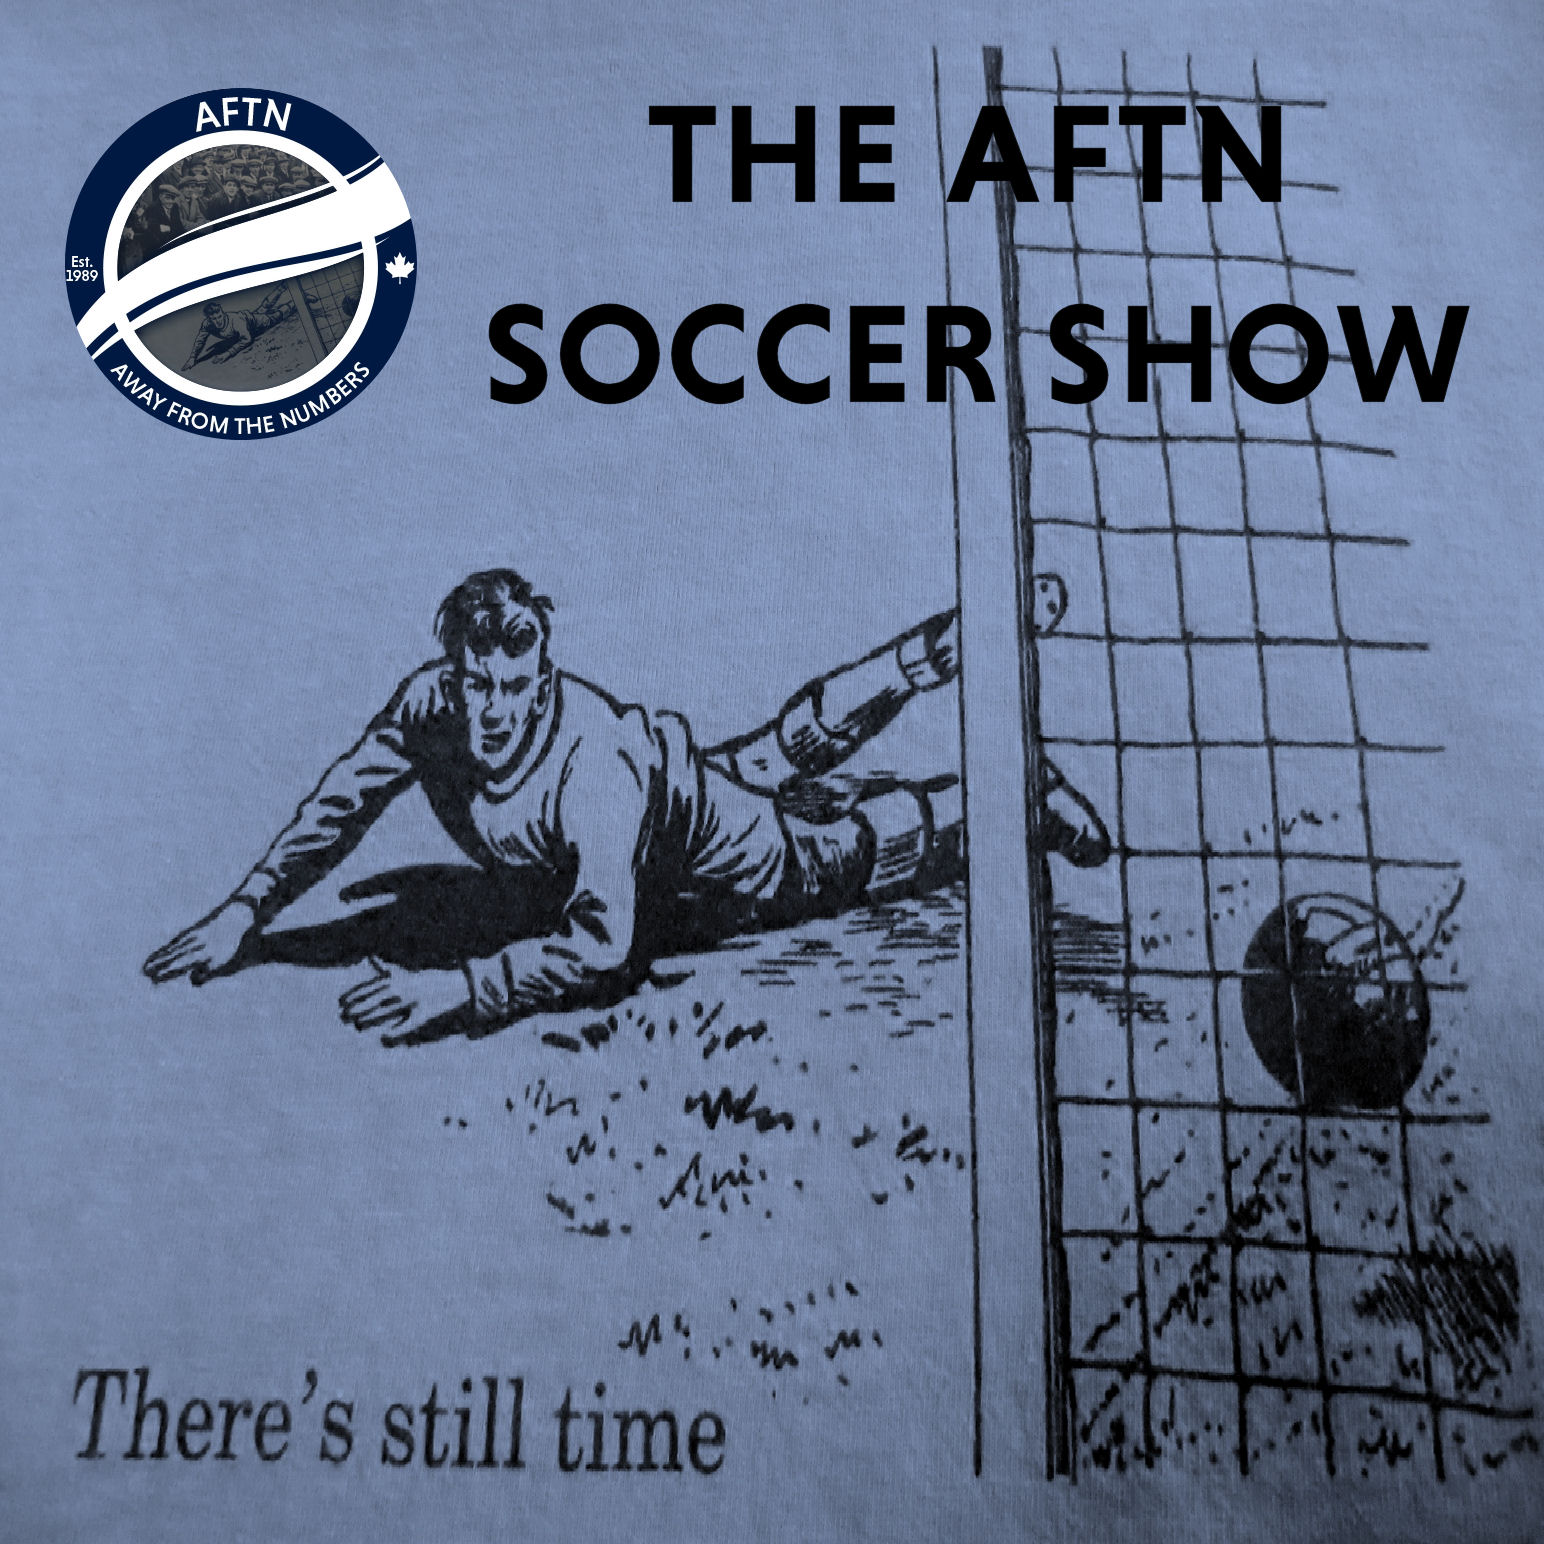 Episode 456 - The AFTN Soccer Show (International Rescue - Whitecaps make moves, Canada eye the octagon, the art of the football song with Neil Grant)